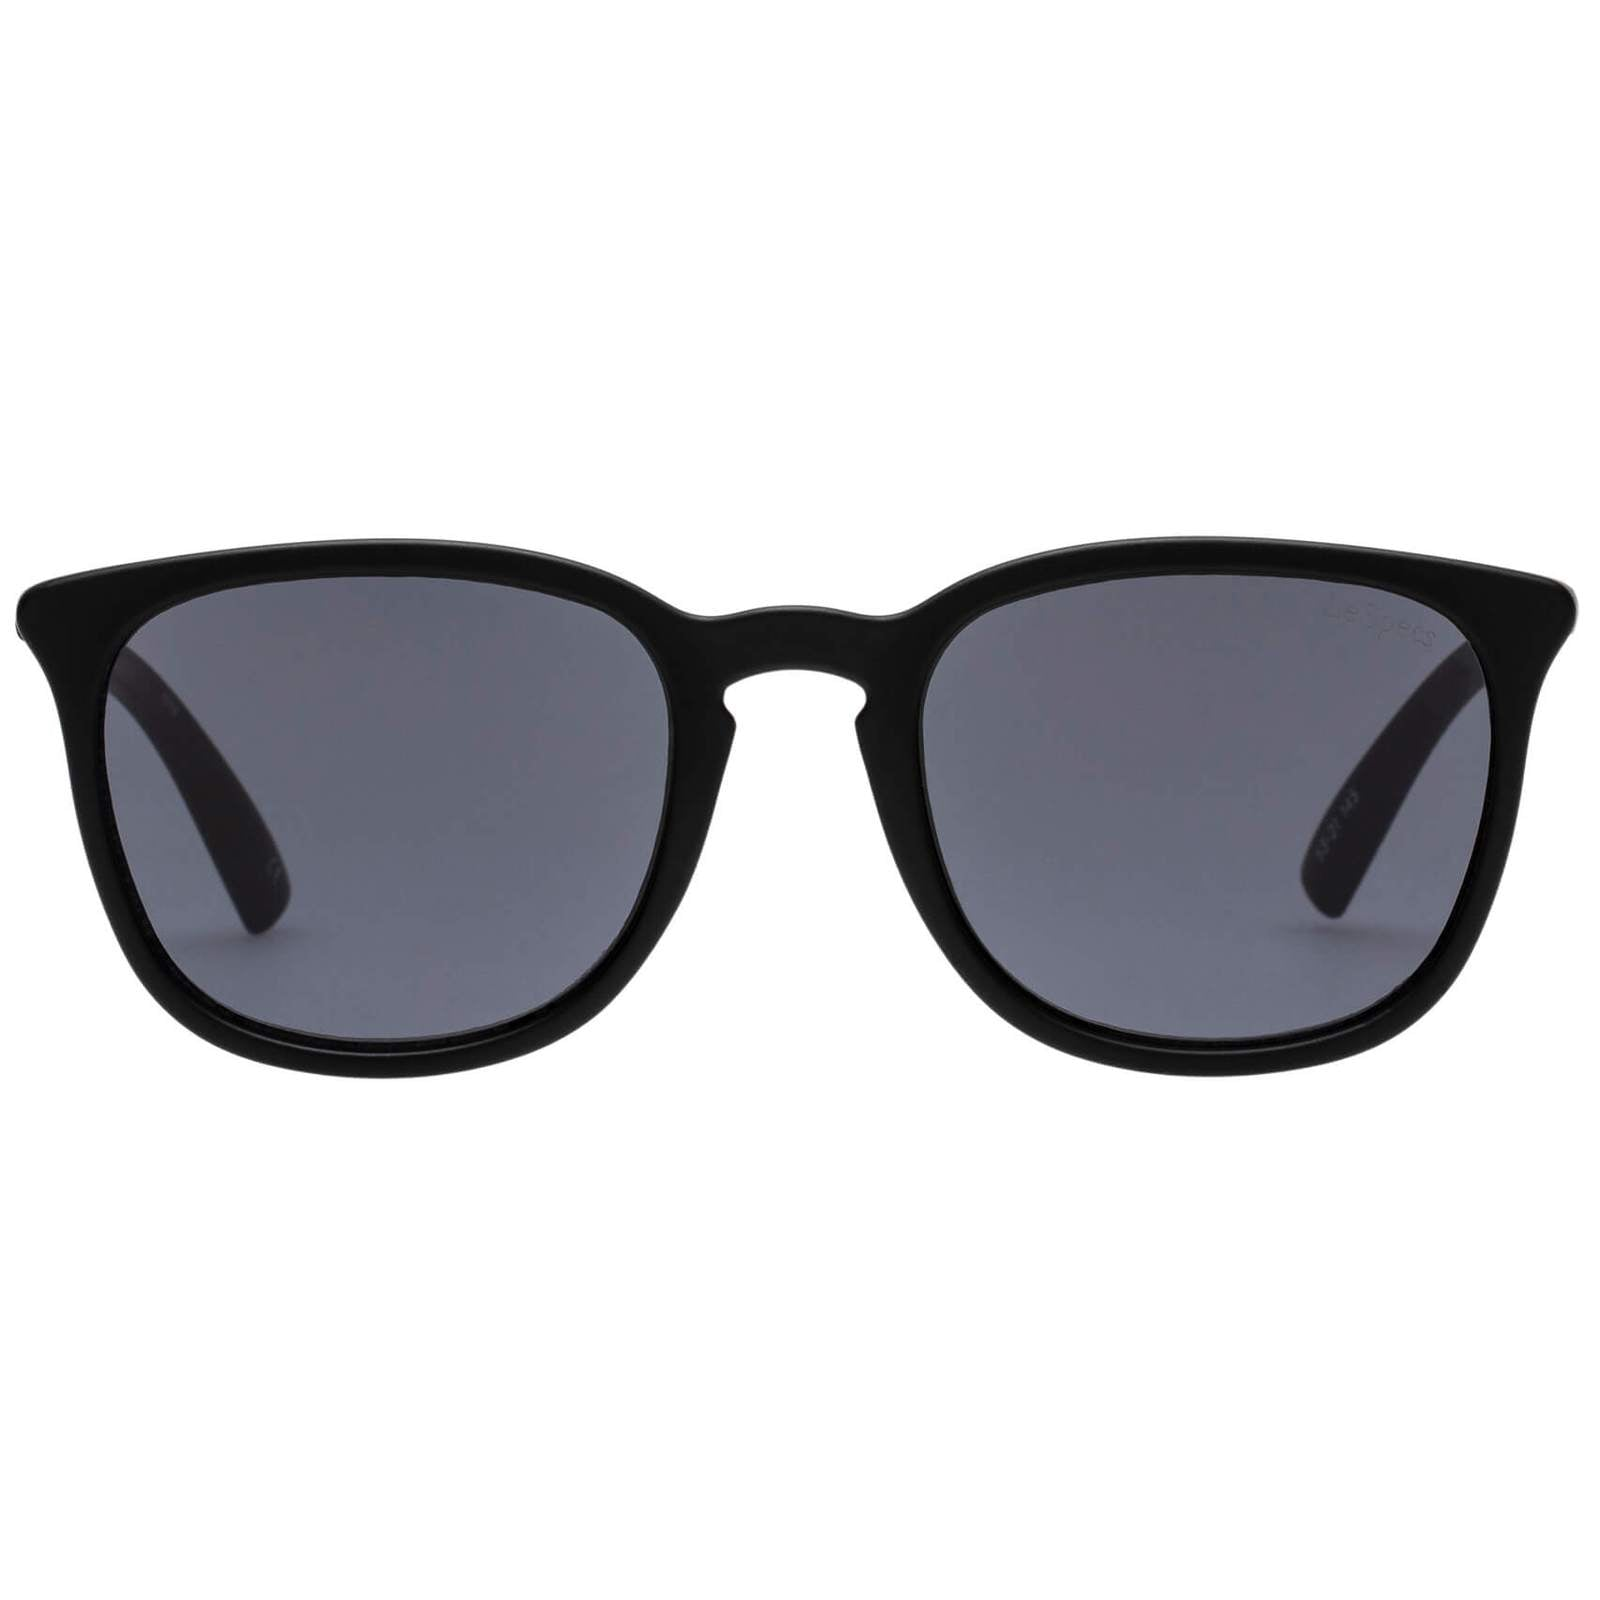 Le Specs Rebeller matte Black Sunglasses